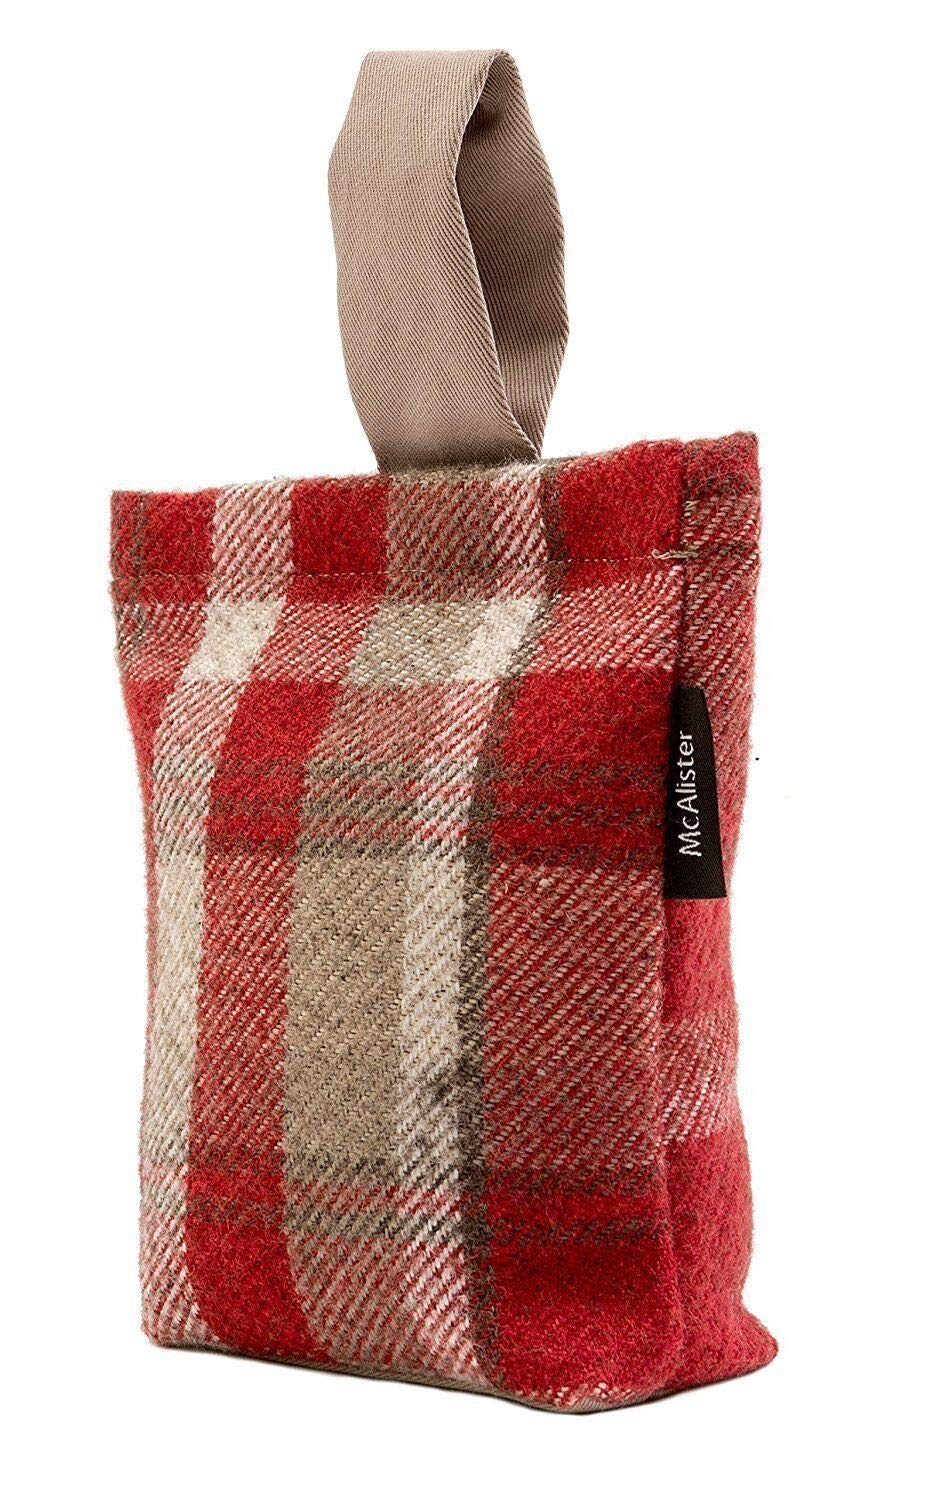 McAlister Textiles Heritage | Red + White Wool Feel Fabric Door Stop Tartan Plaid Patterned Doorstopper Book Stopper 8x6 Inches